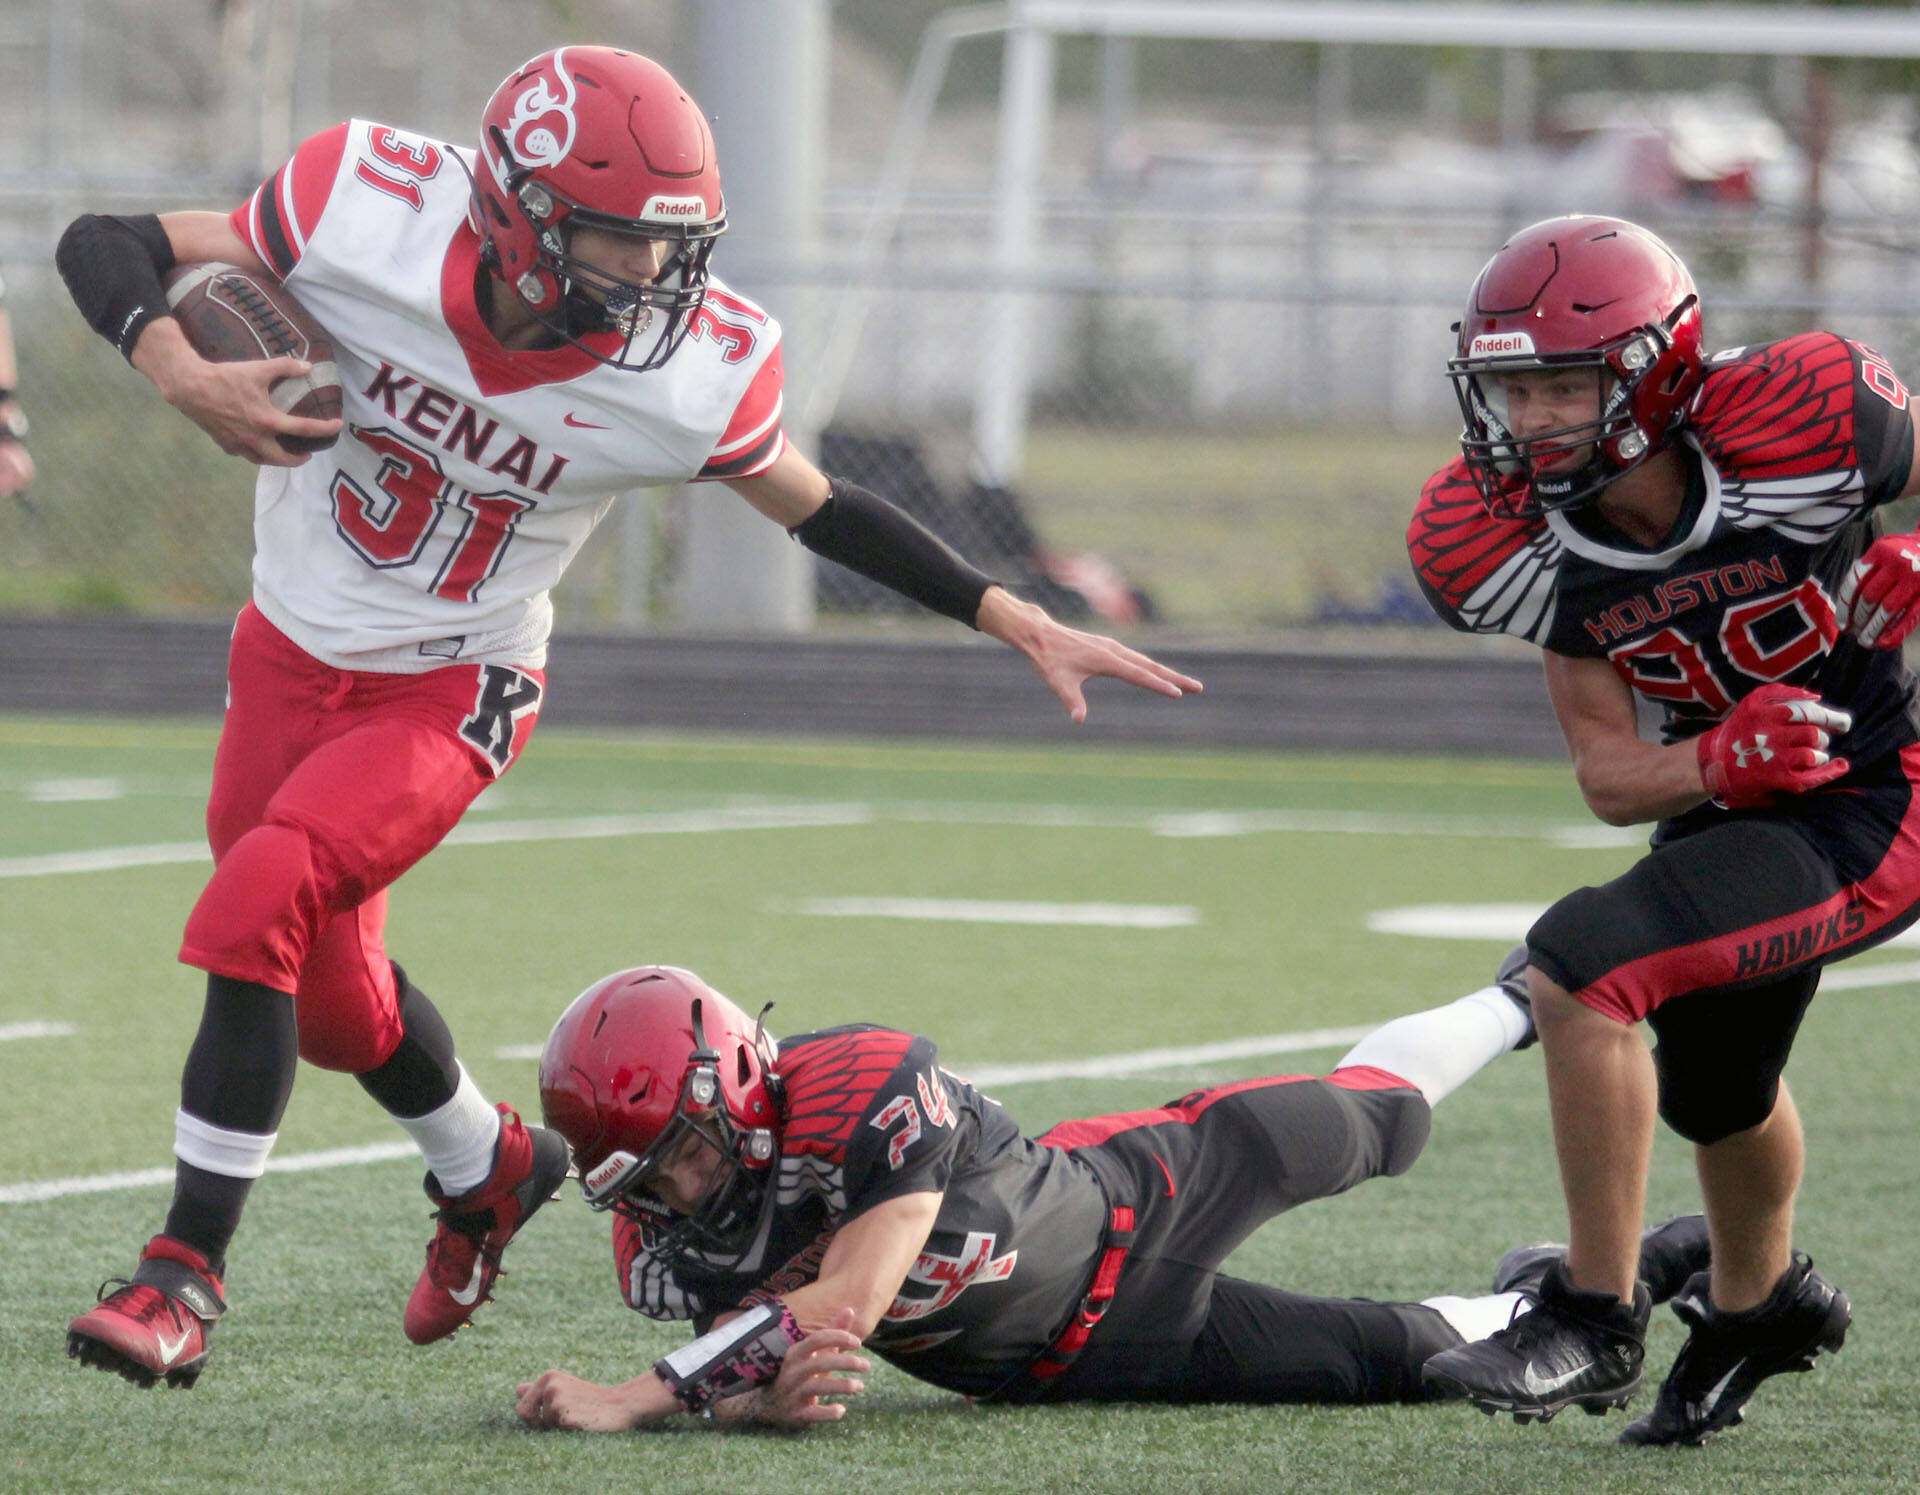 Kenai's Levi Good tries to break outside during a 32-2 loss to the Houston Hawks on Friday, Sept. 3, 2021, in Houston, Alaska. (Photo by Jeremiah Bartz/Frontiersman)